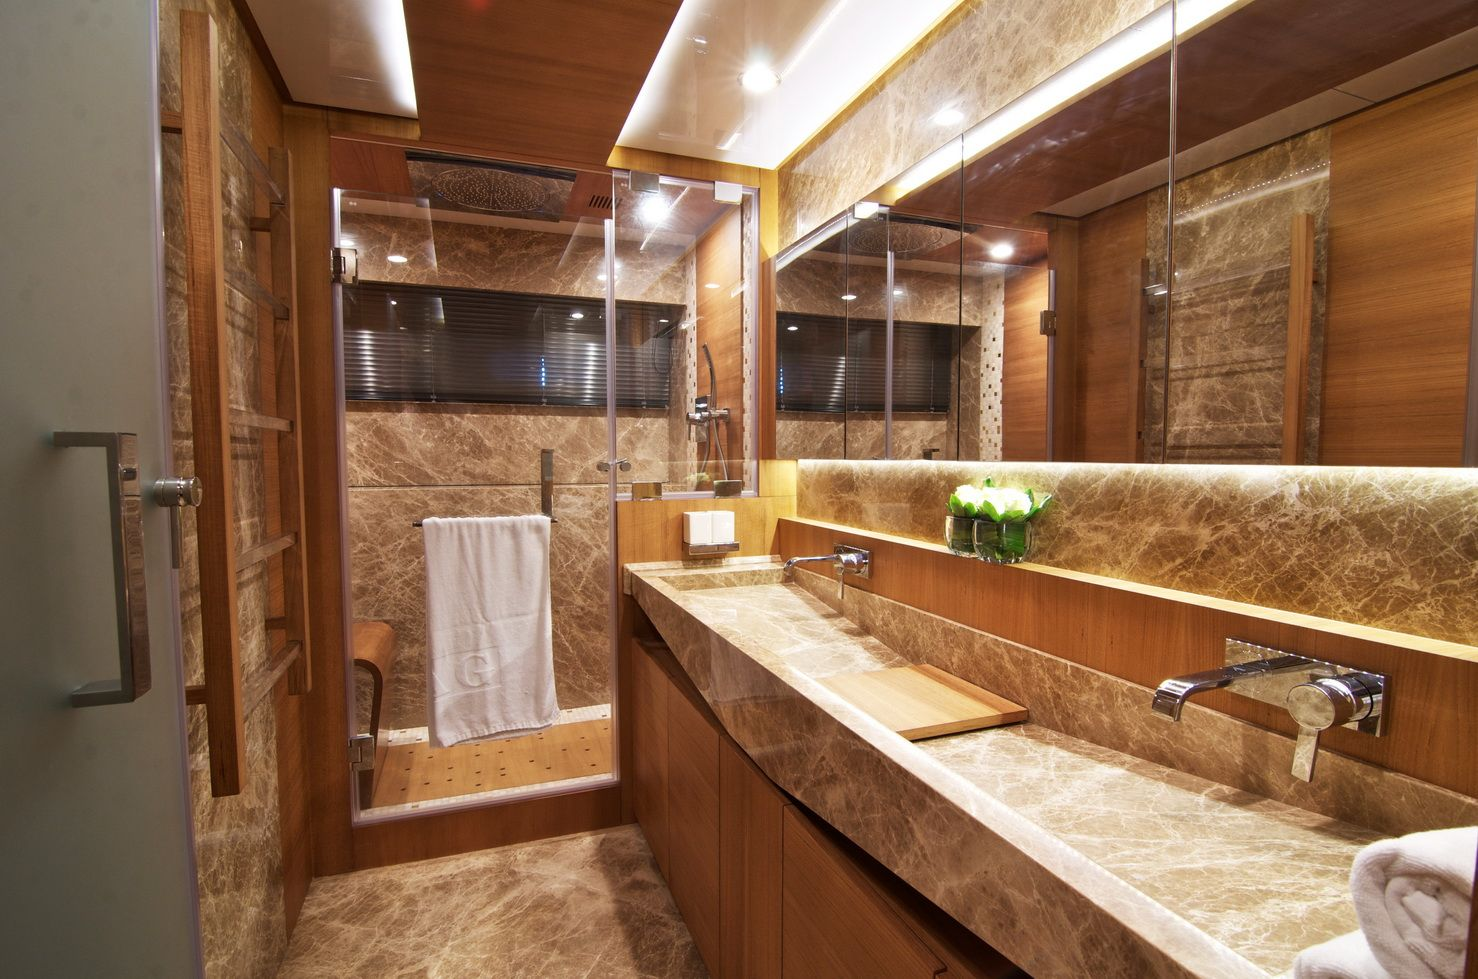 Small luxury cabin interior - Luxury Yacht Bathrooms Bathroom Images Of The Iag 100 Luxury Yacht